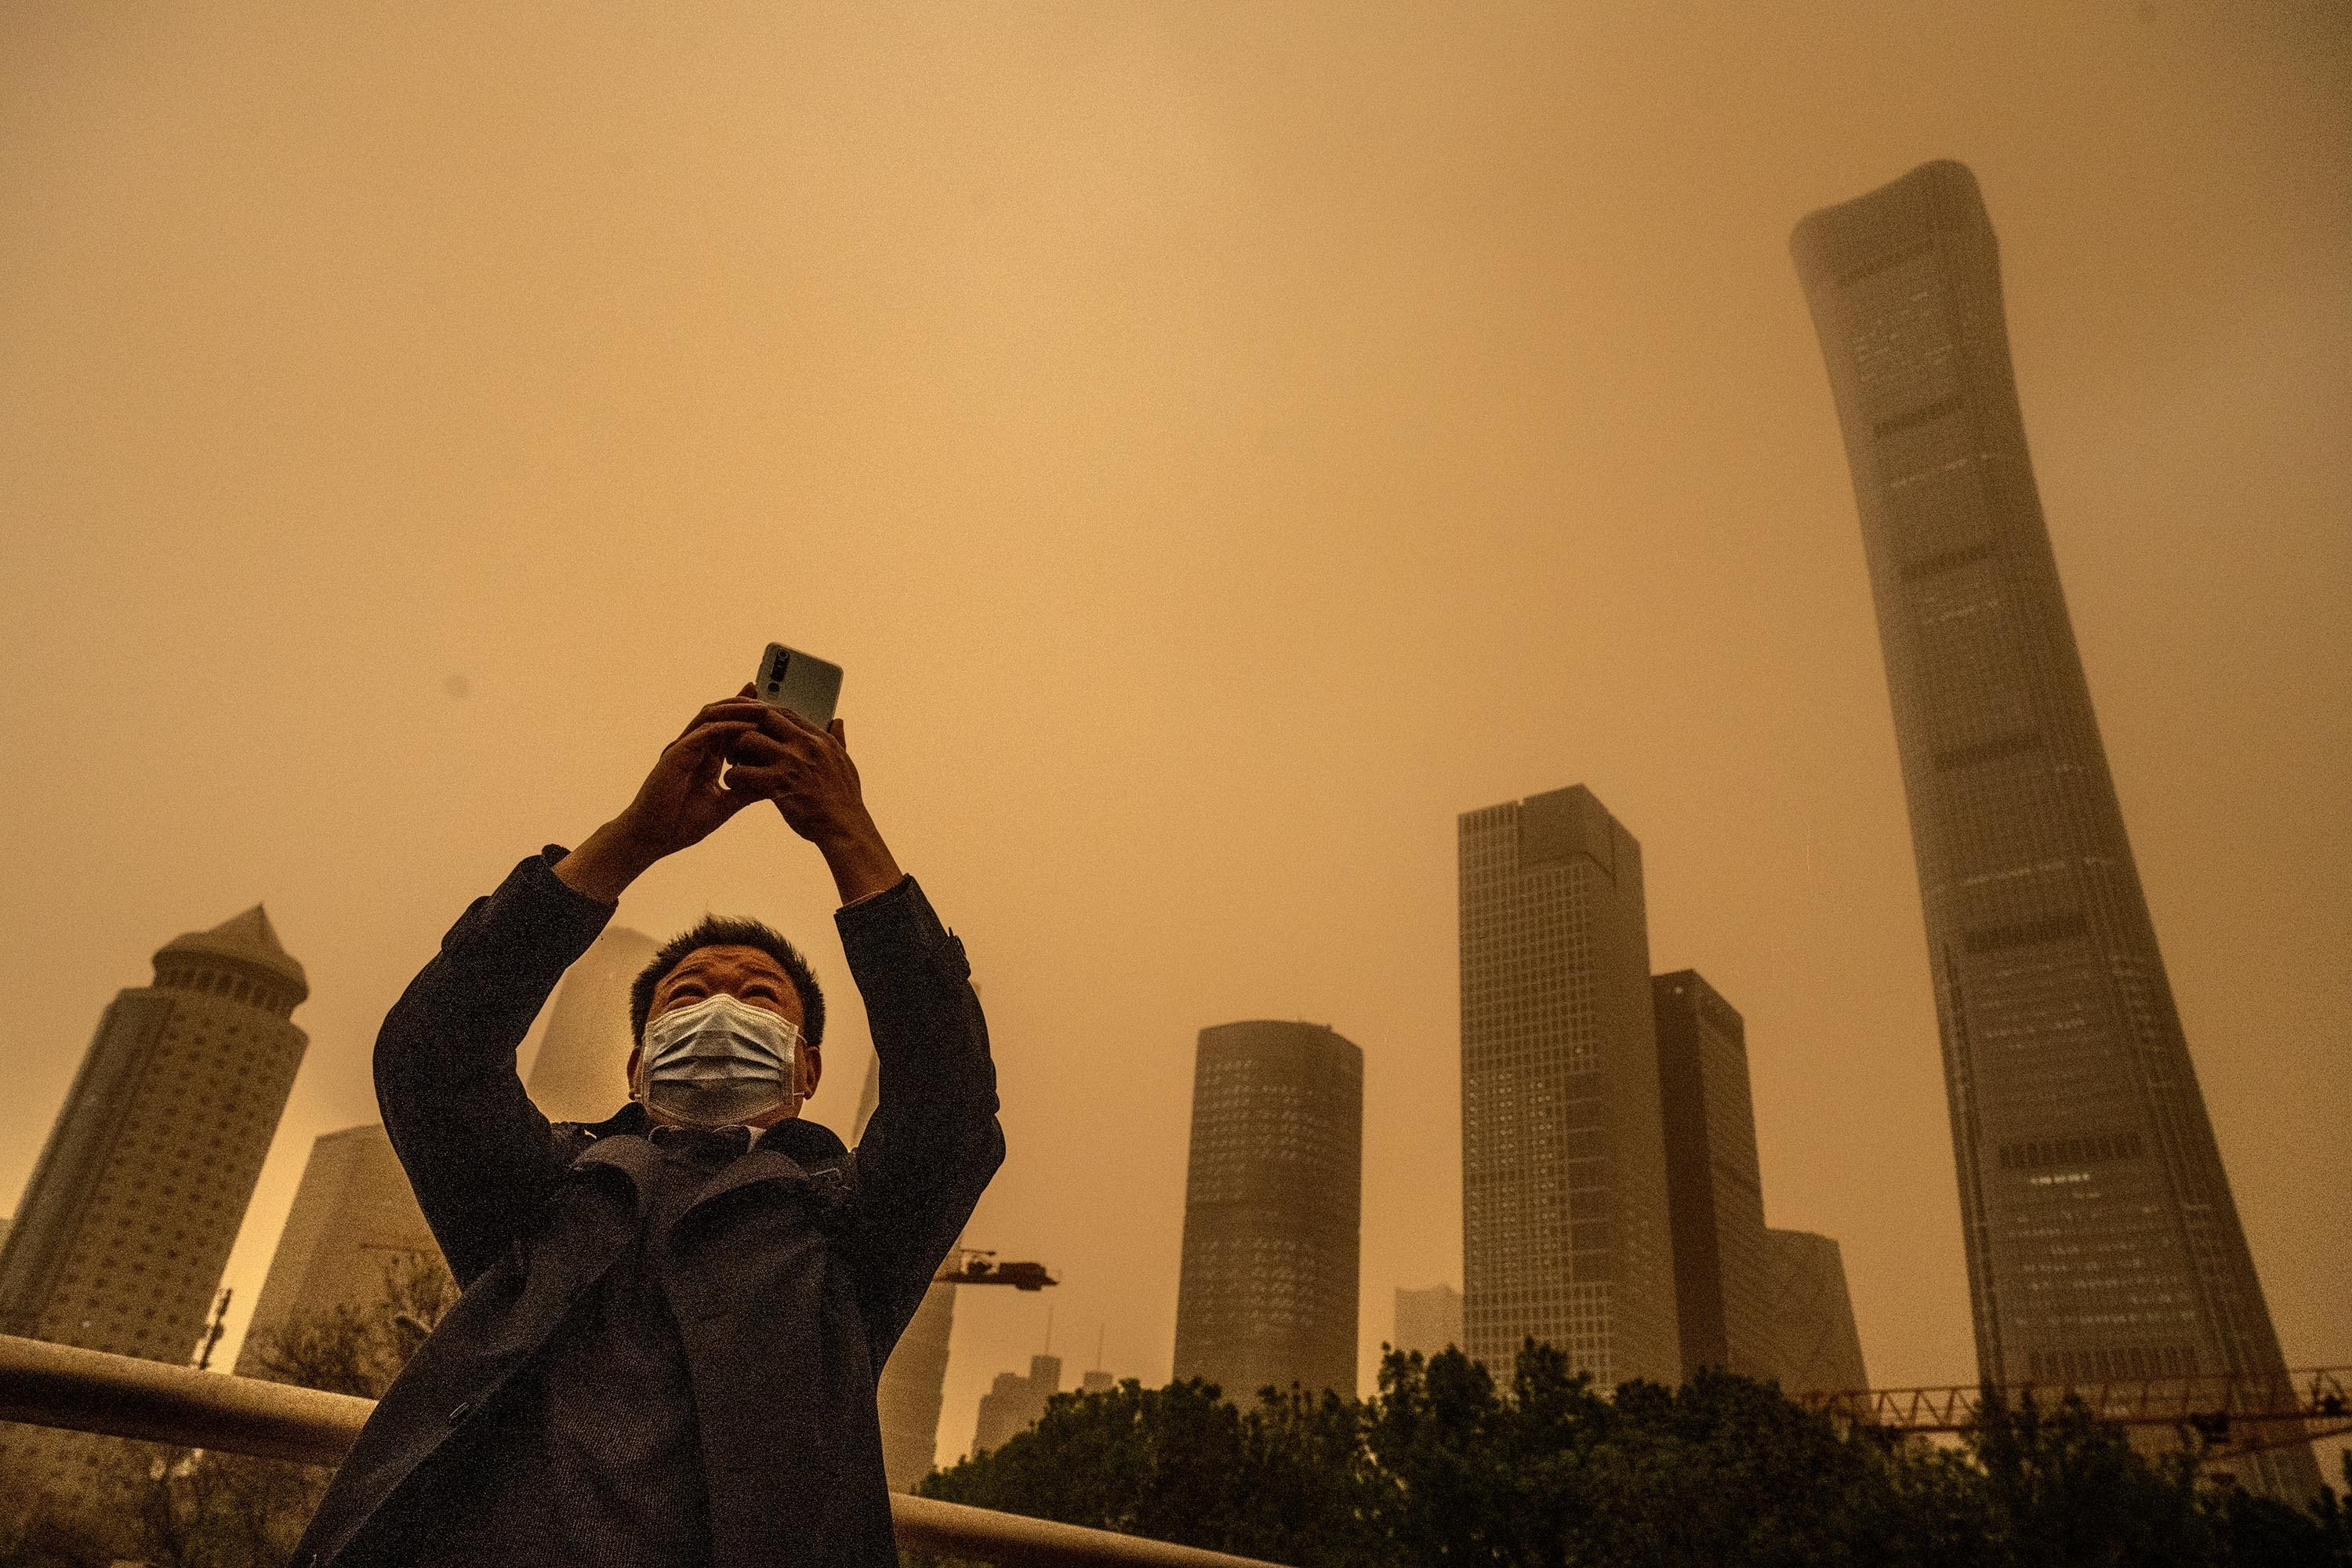 A man wears a protective mask as he takes photos during a seasonal sandstorm, Beijing, China, April 15, 2021. (Photo by Getty Images)